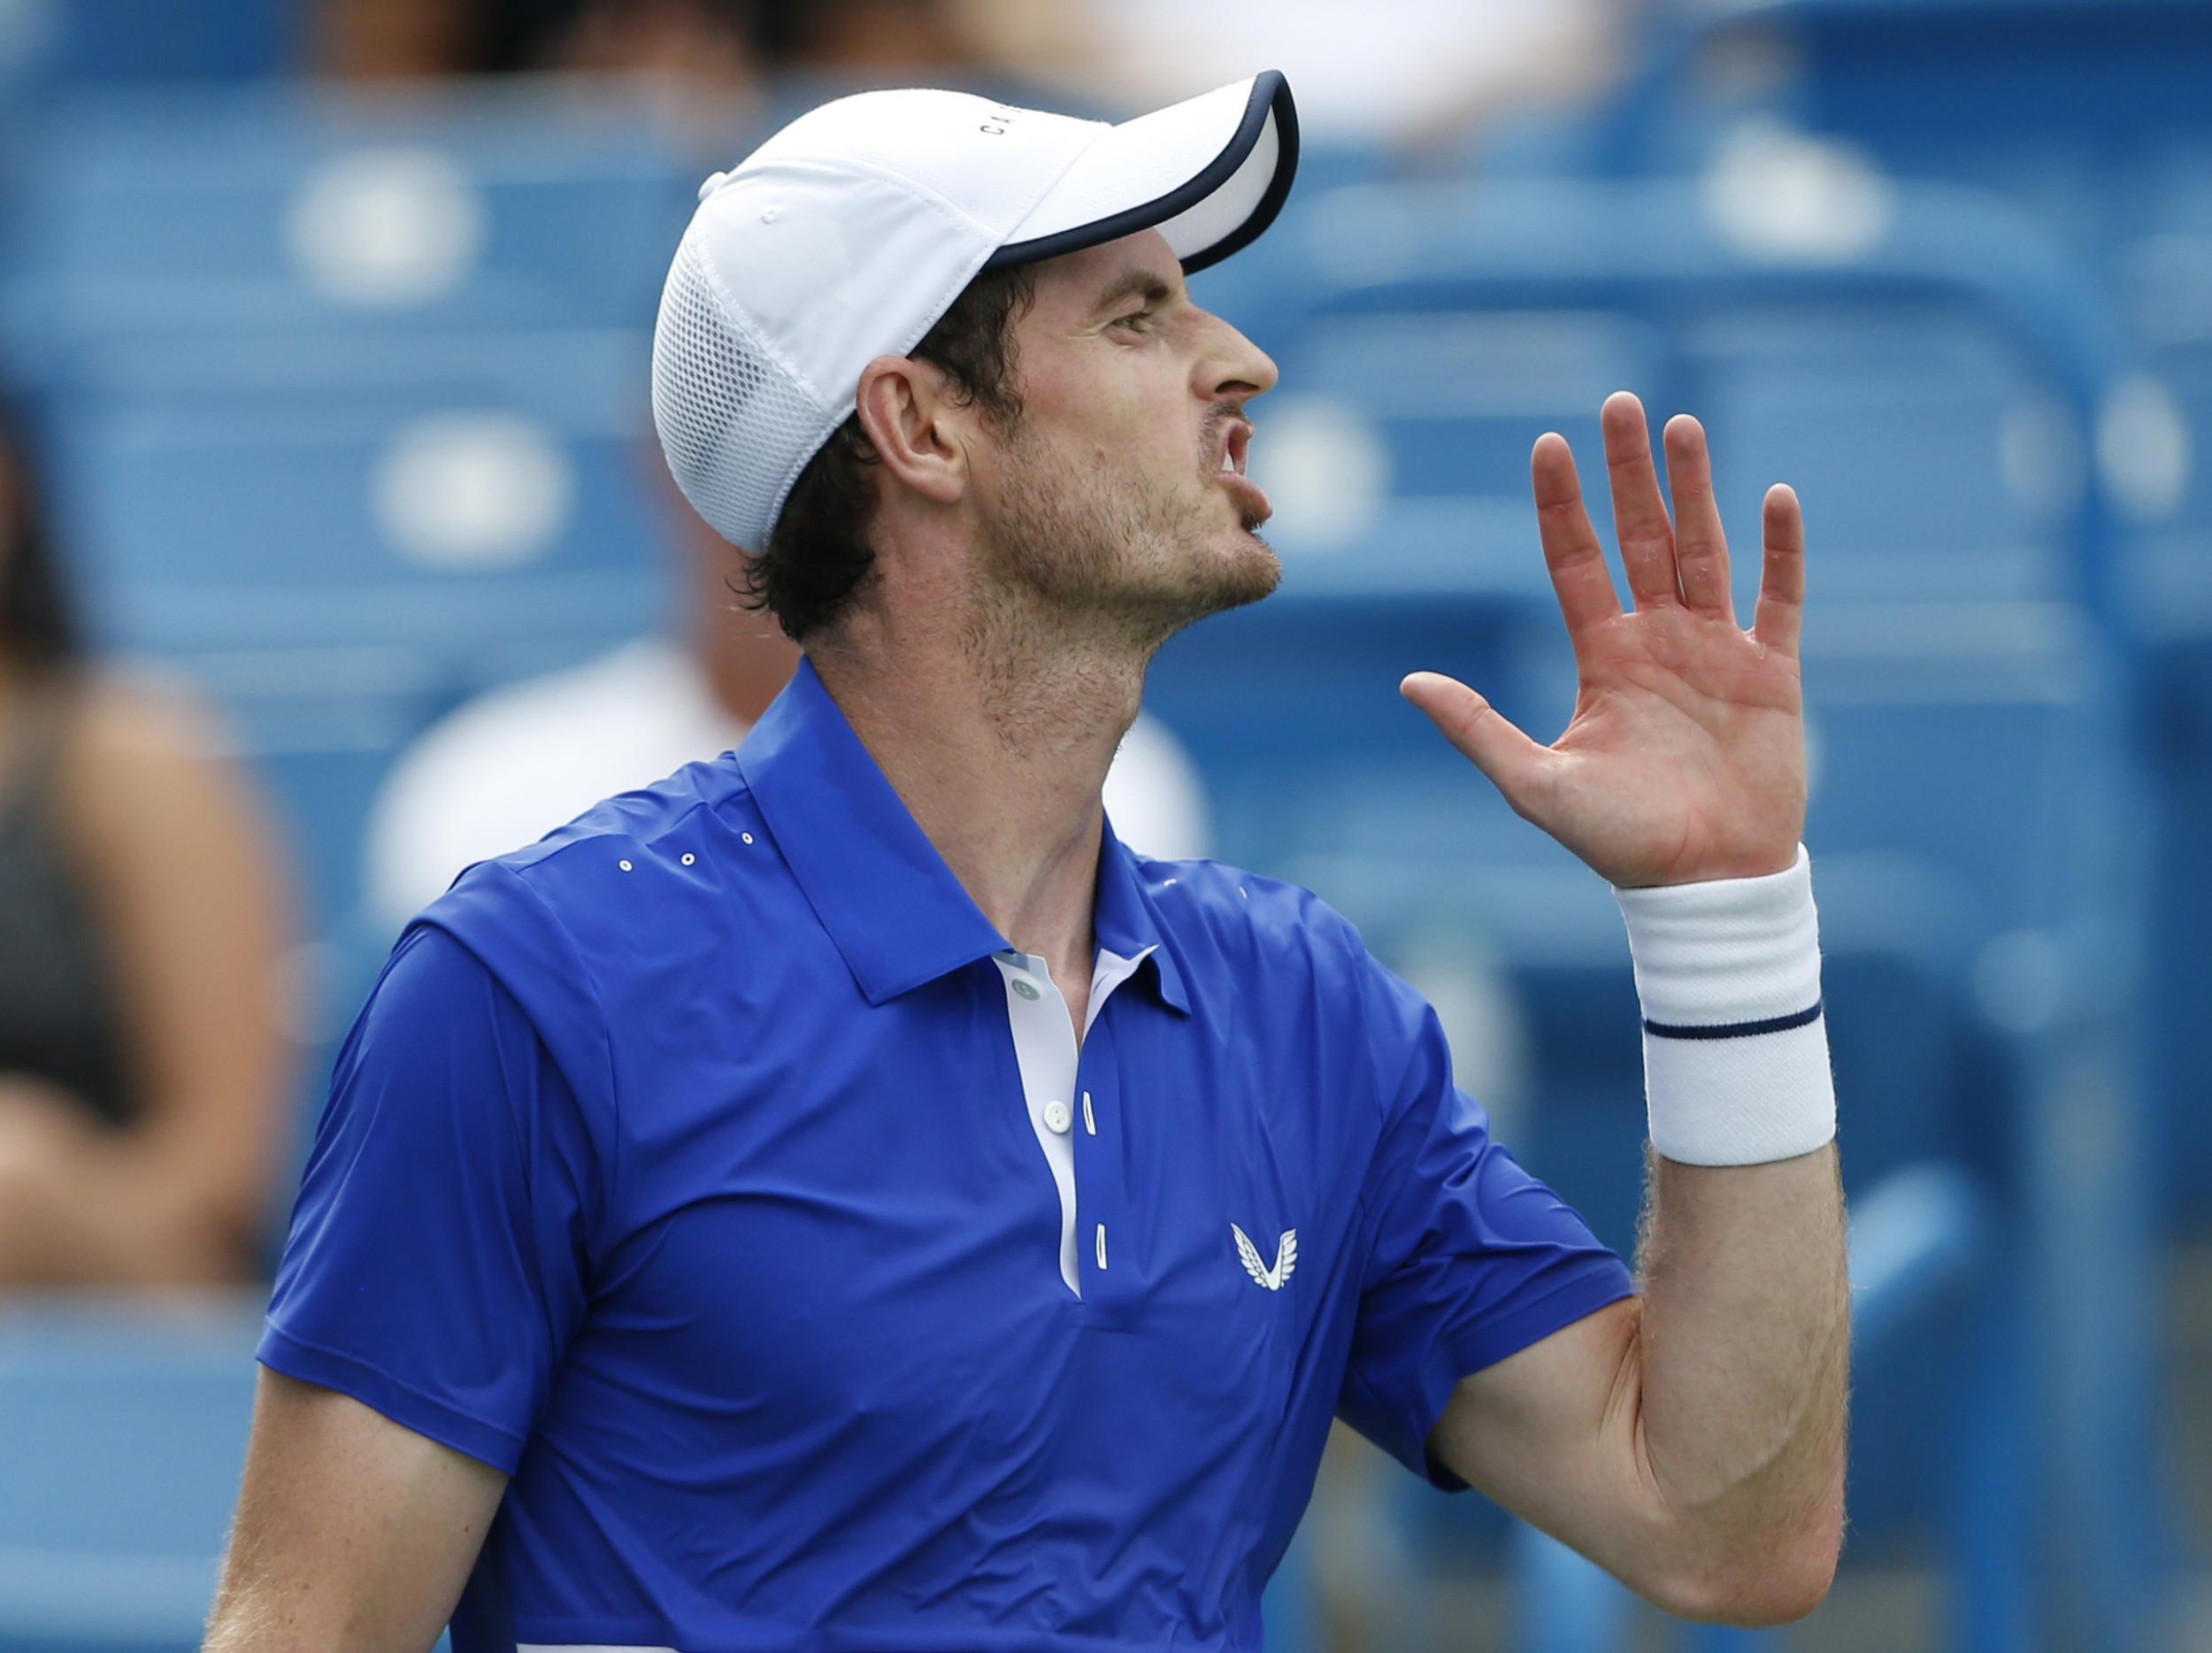 Andy Murray considers playing Challenger events as he continues singles comeback from injury